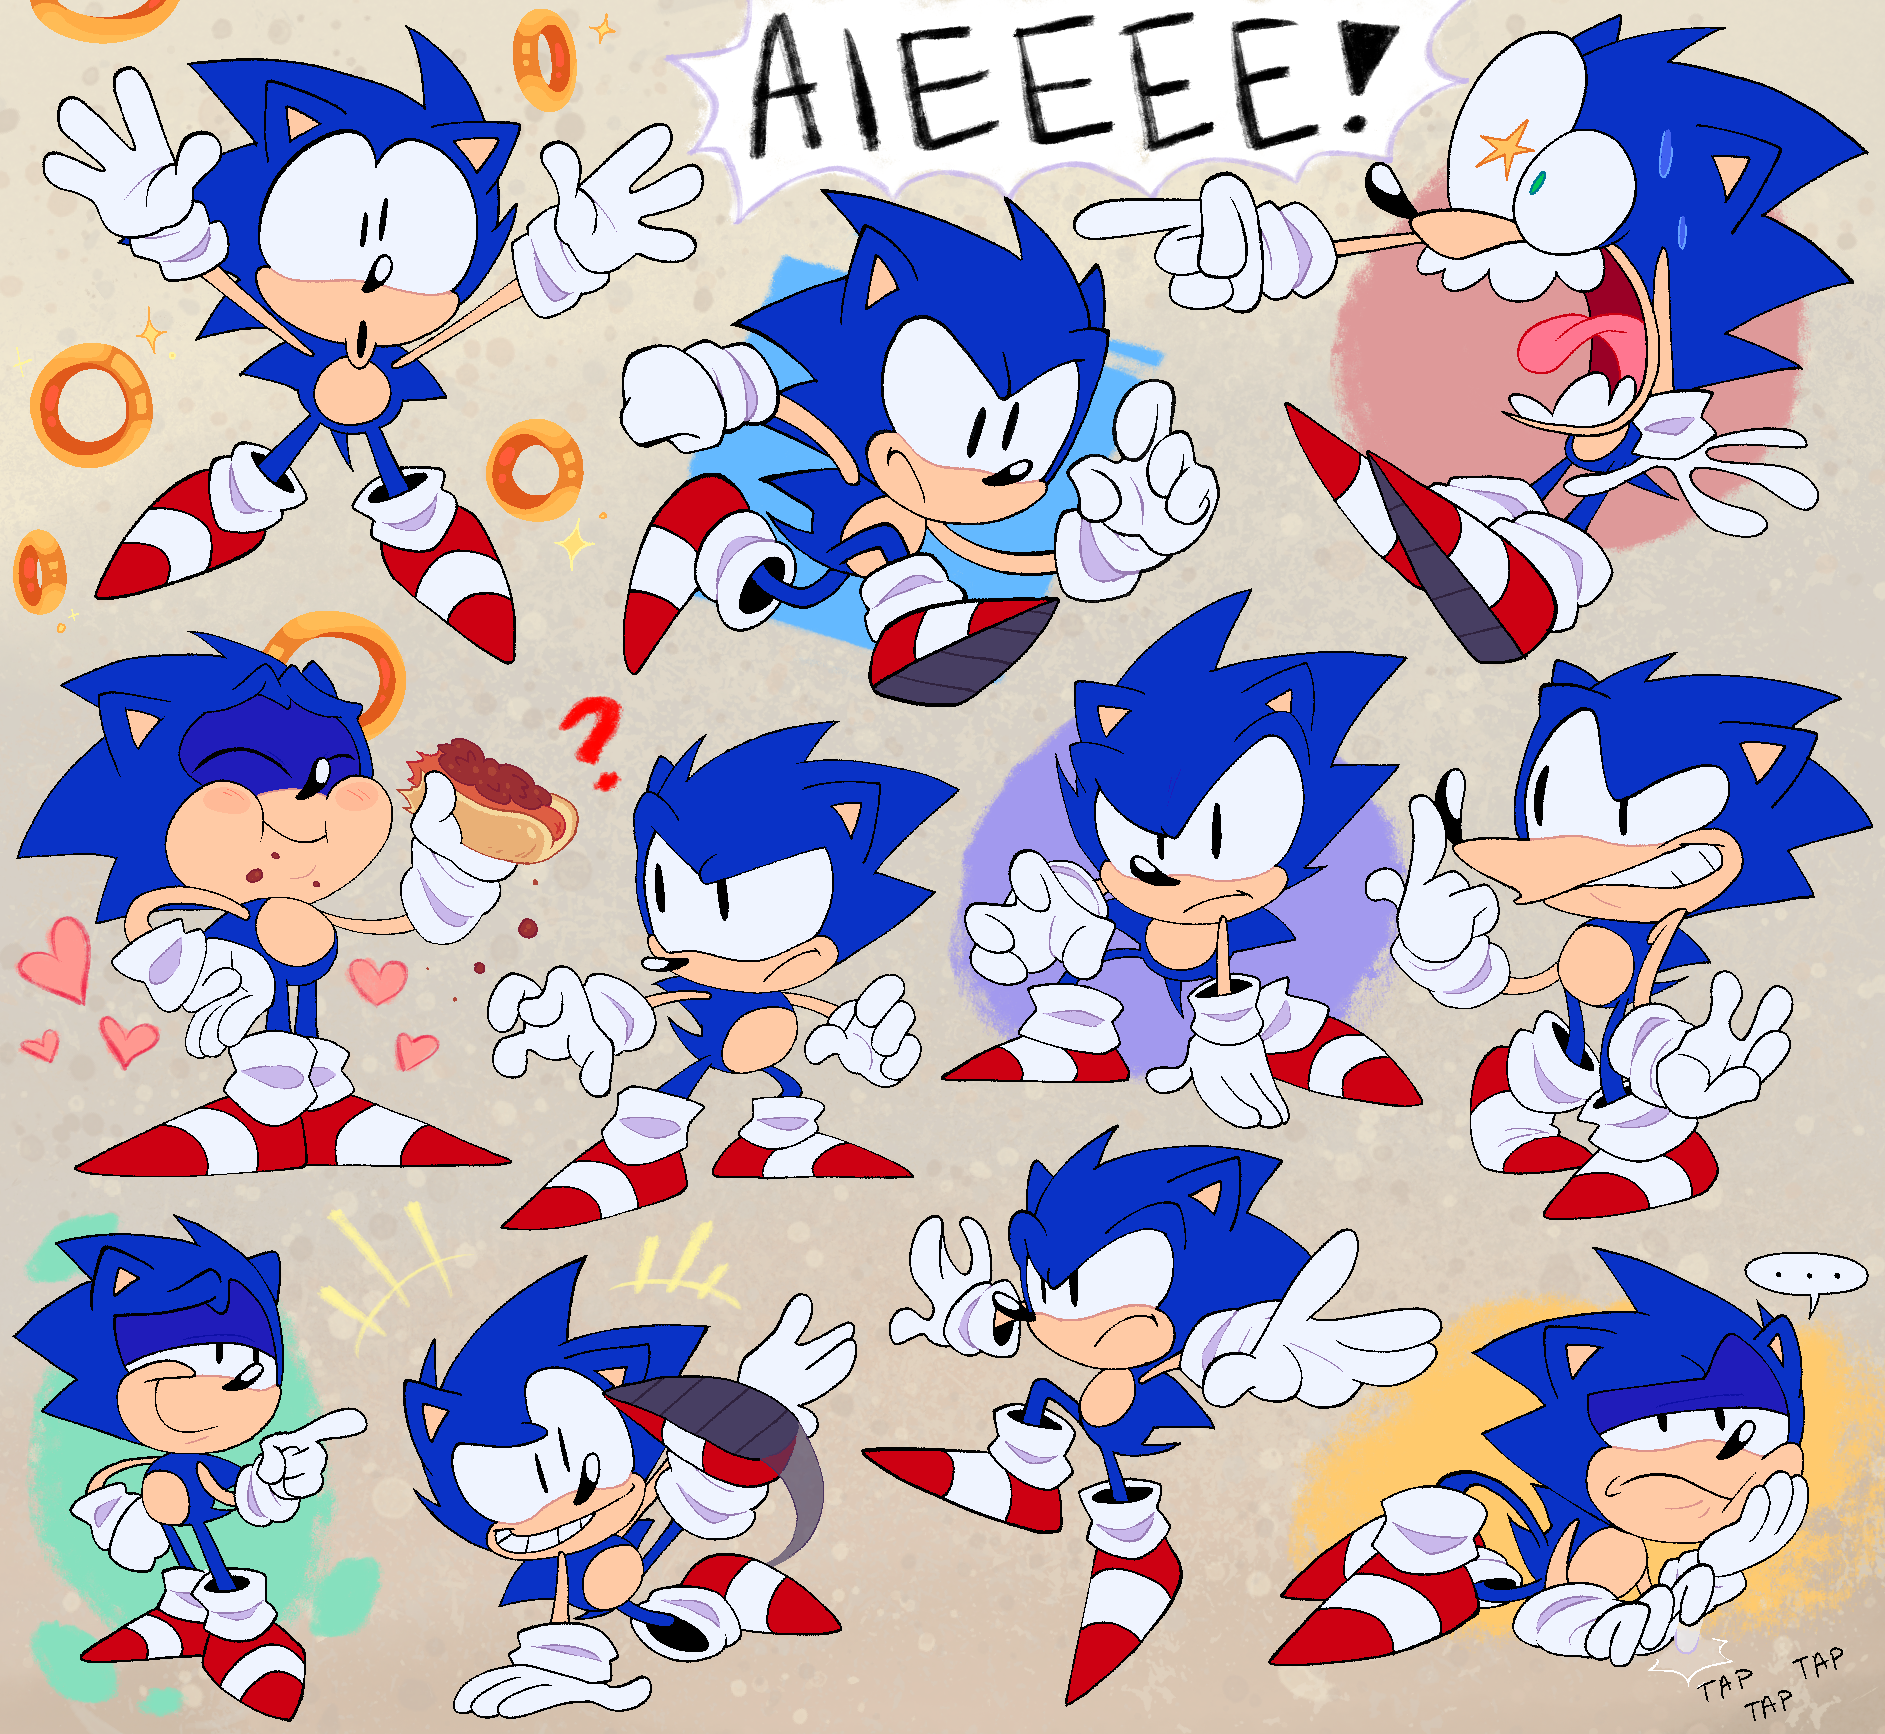 Drawings of a particular blue hedgehog